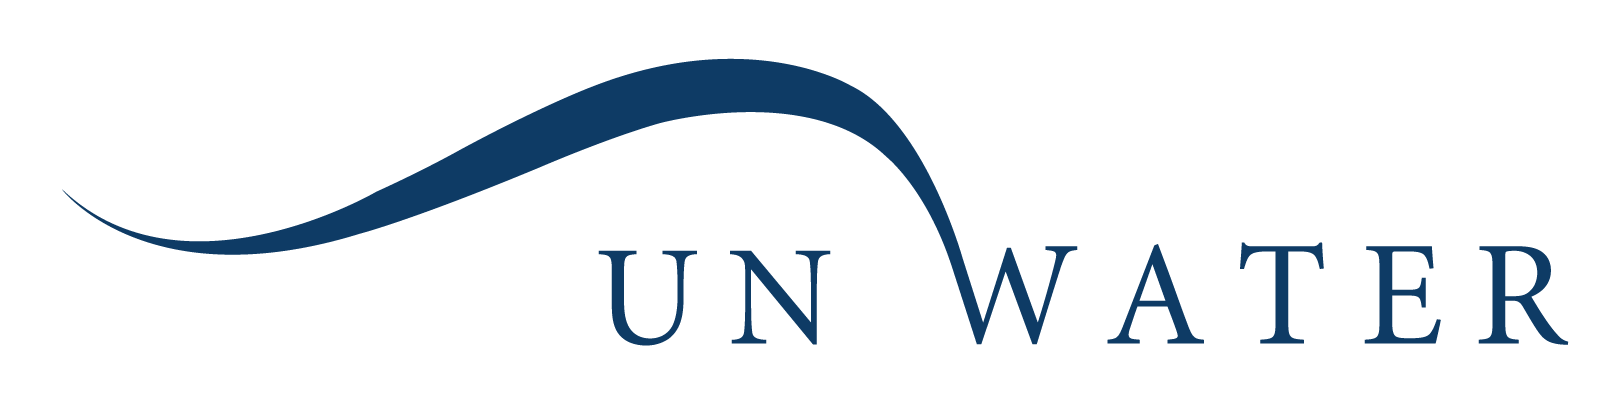 Un water header logo